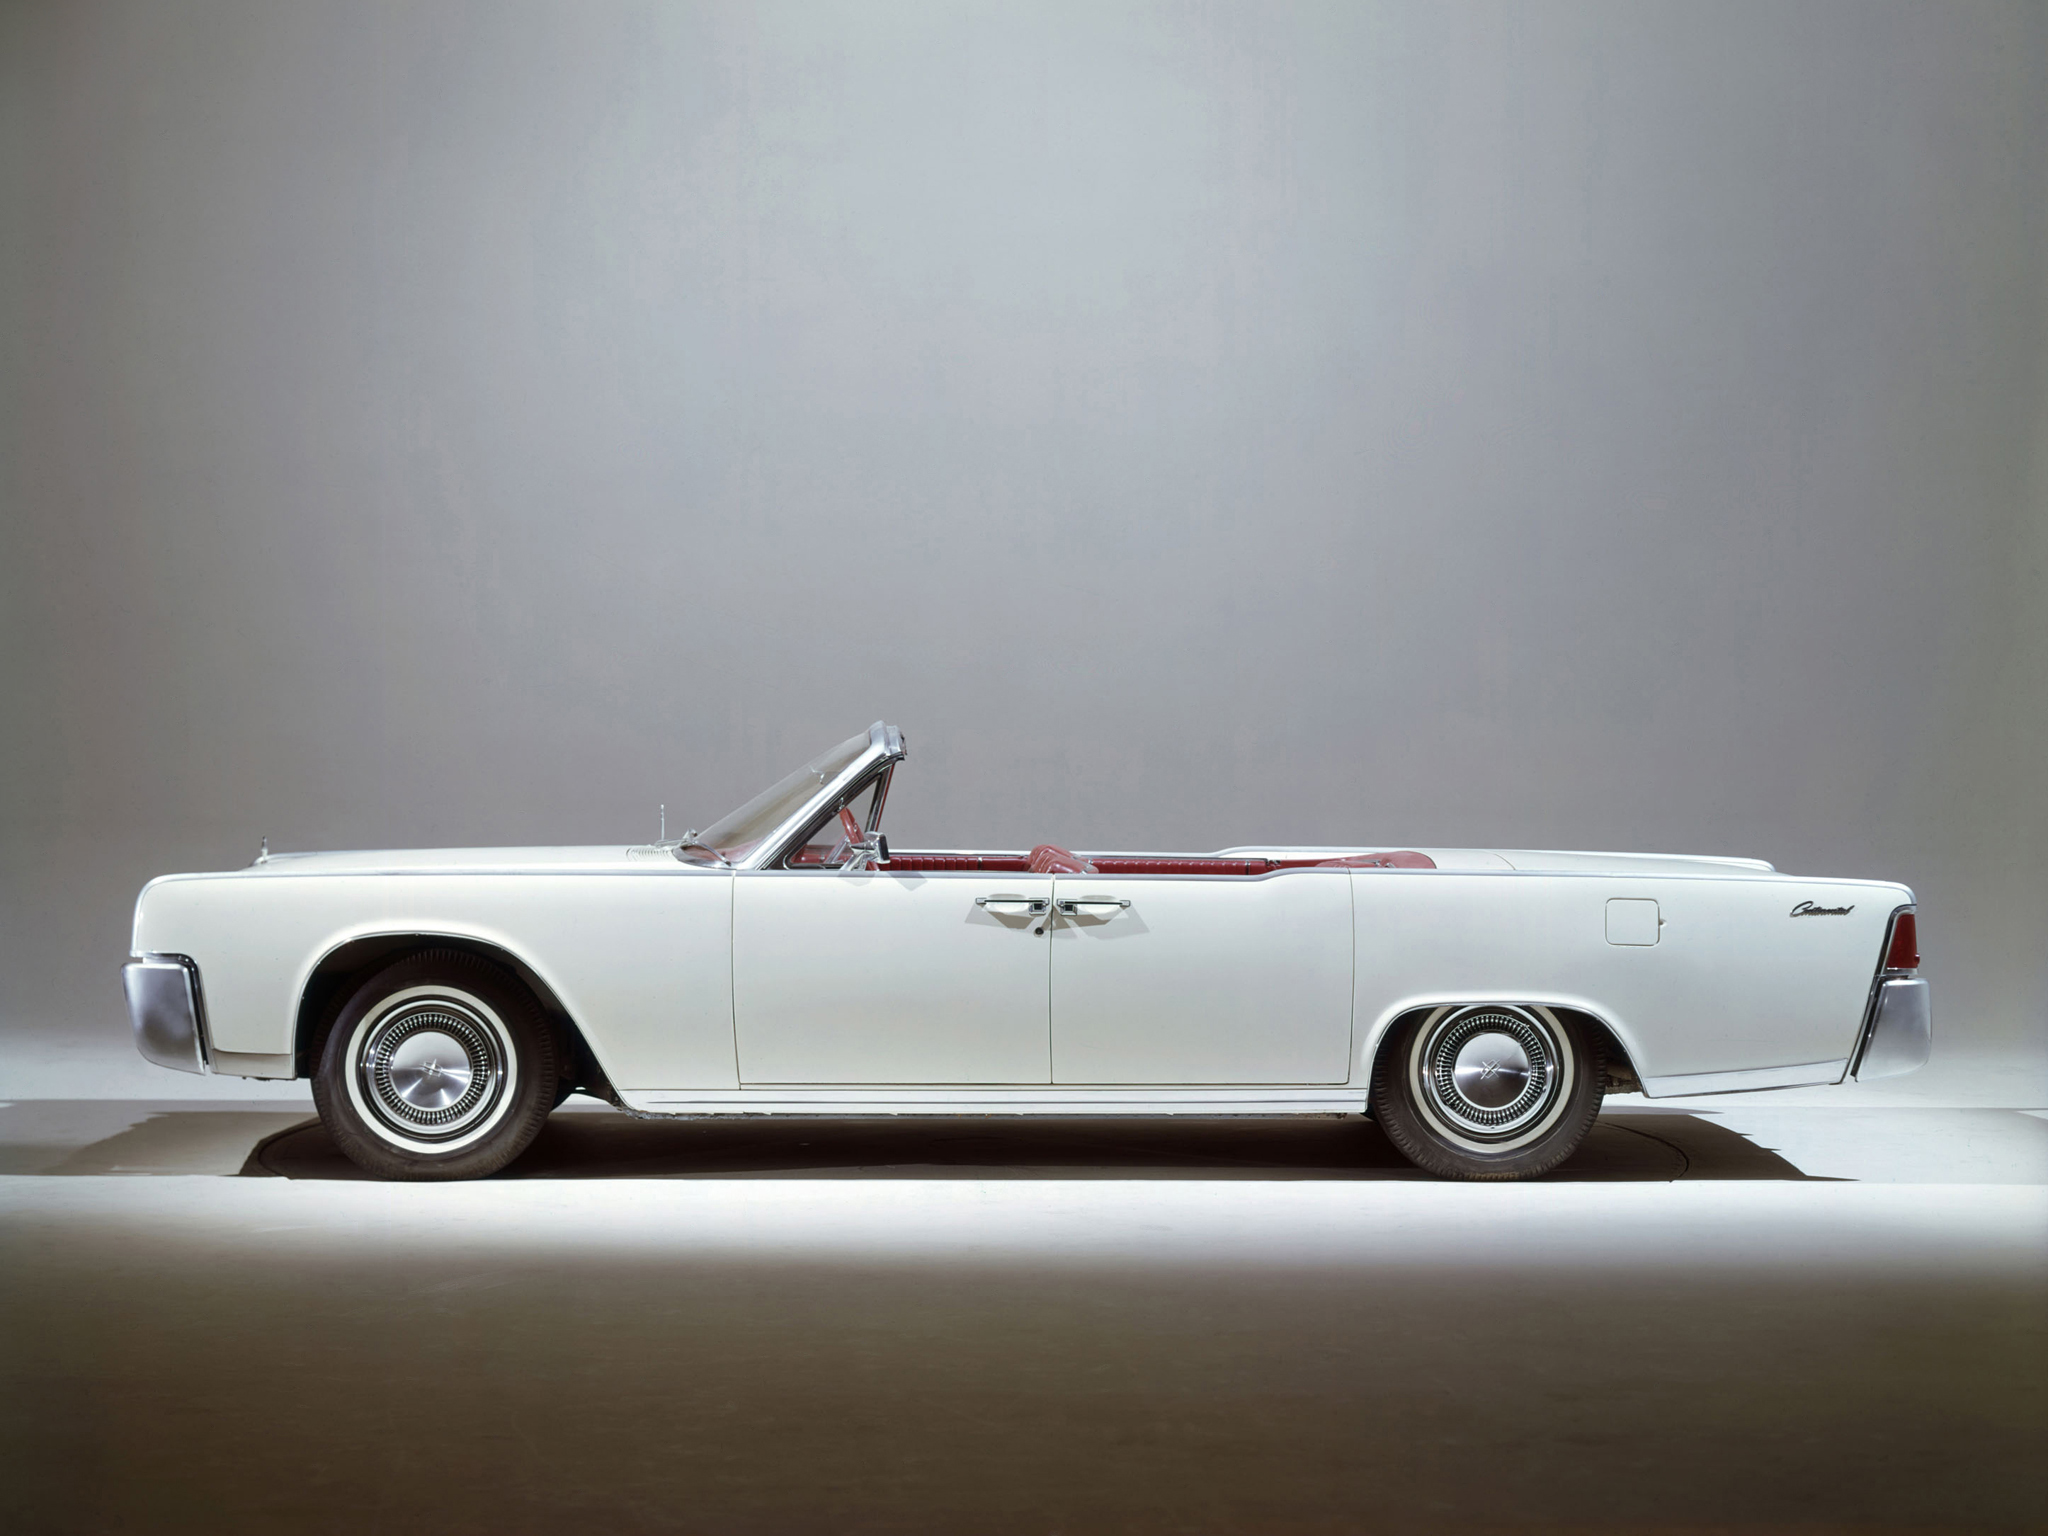 1964 lincoln continental convertible interior pictures to pin on pinterest. Black Bedroom Furniture Sets. Home Design Ideas